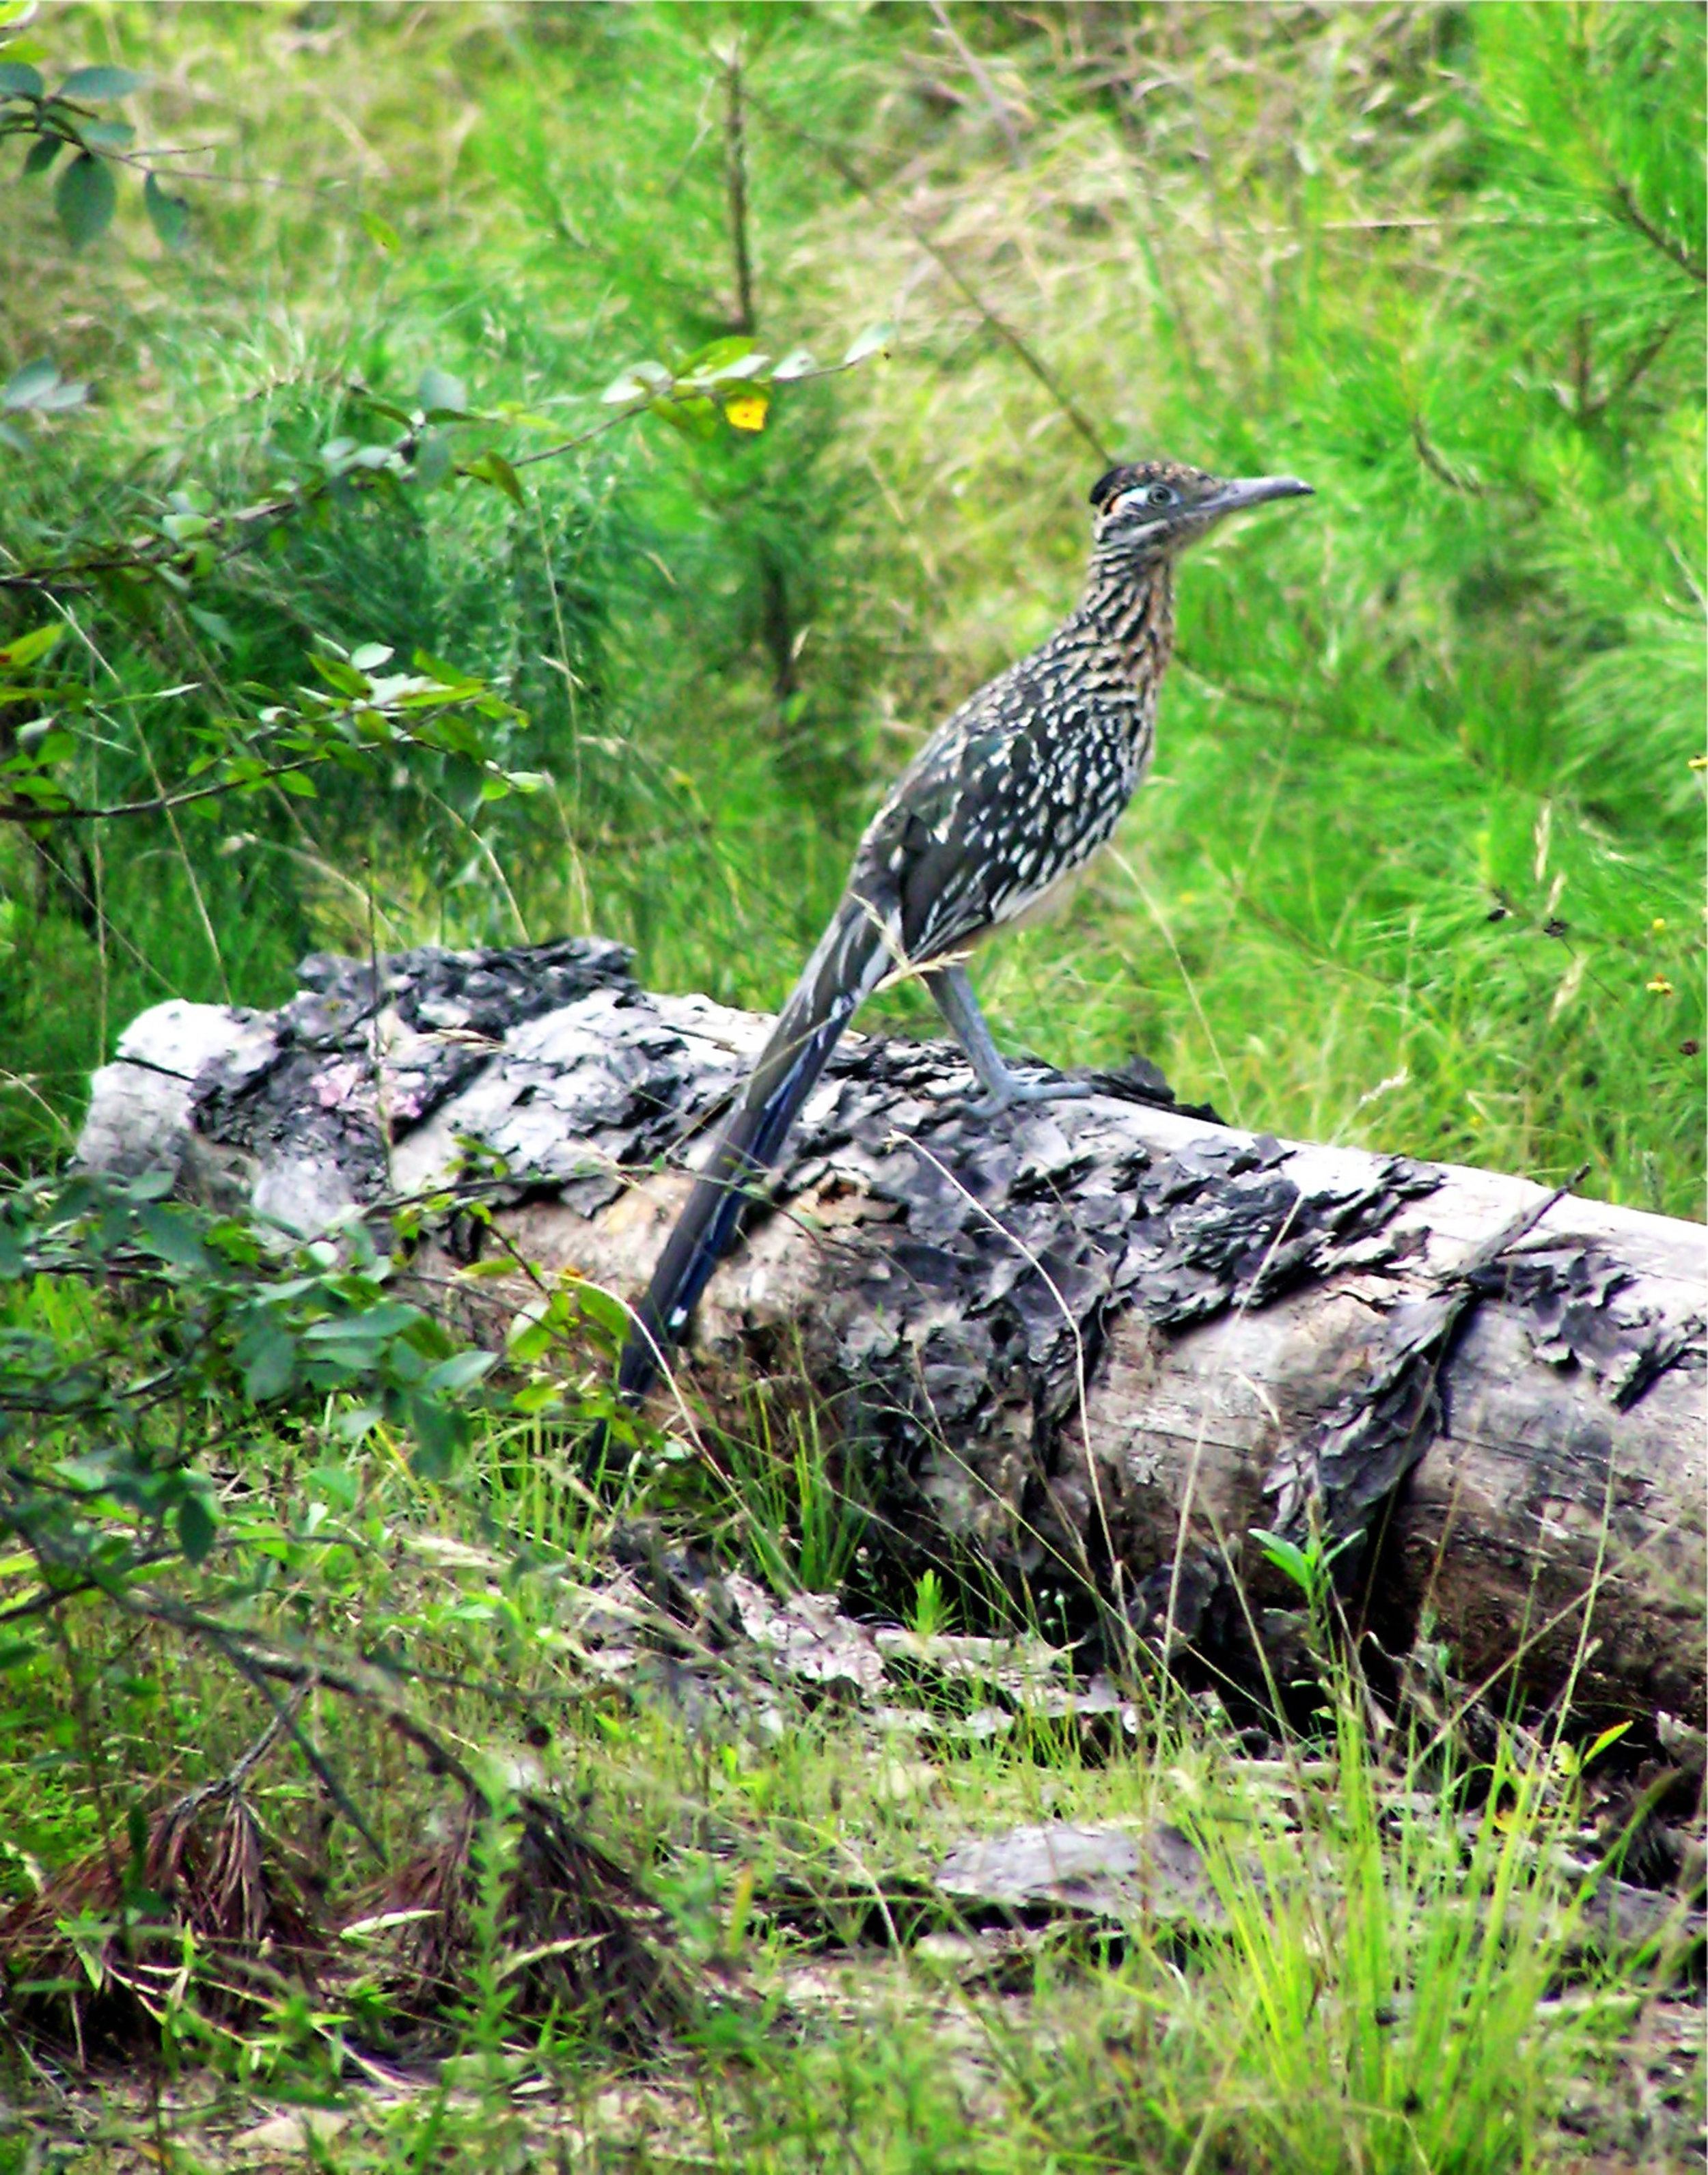 the elusive roadrunner is one of the most sought-after sightings in the Ouachita Mountains.